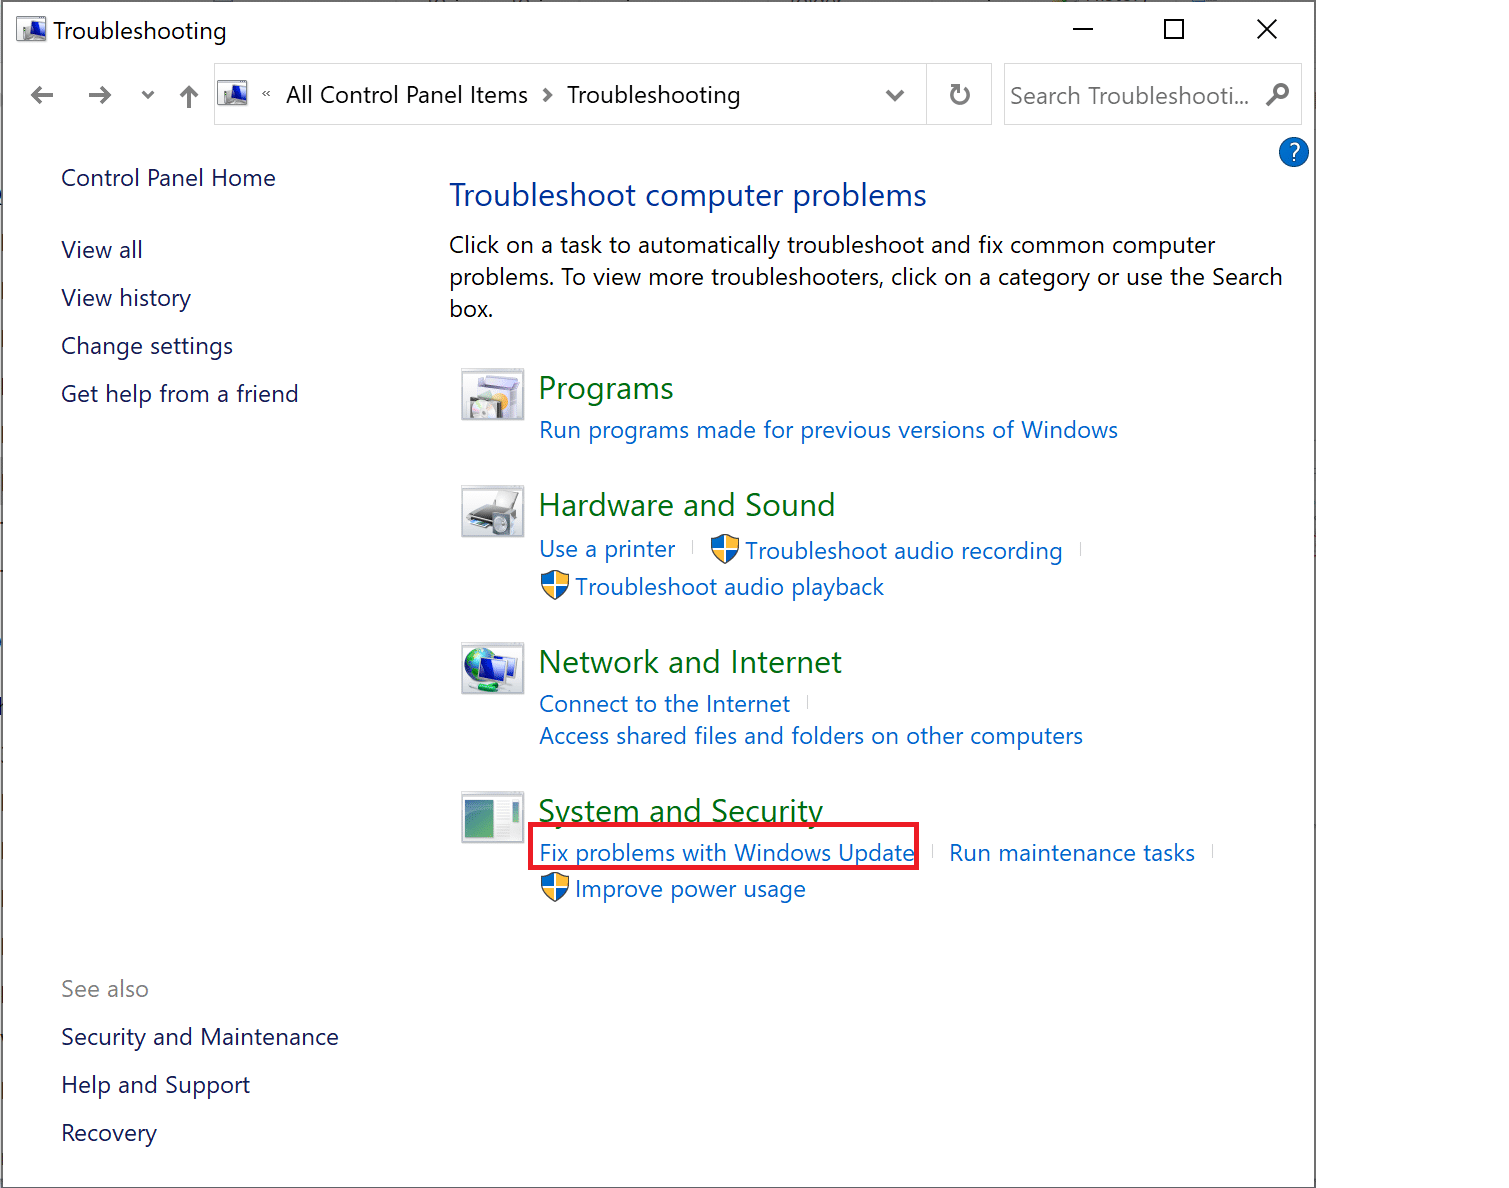 Click on Fix problems with Windows Update under System and Security | How to Fix 'Windows 10 Won't Update'